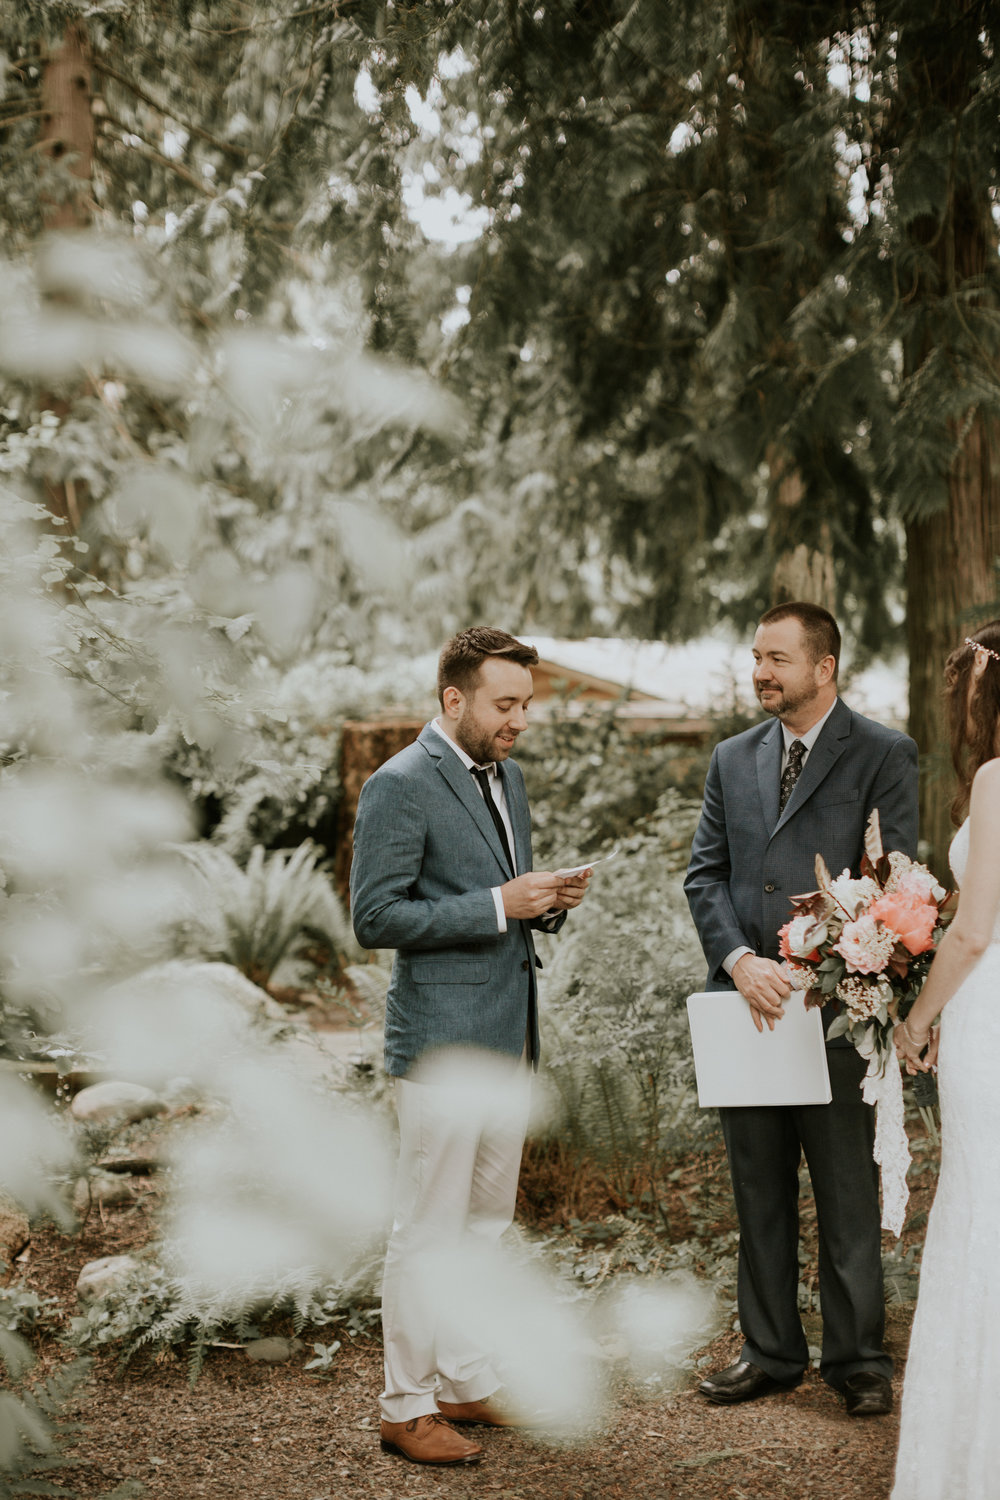 PNW-elopement-wedding-engagement-olympic national park-port angeles-hurricane ridge-lake crescent-kayla dawn photography- photographer-photography-kayladawnphoto-47.jpg